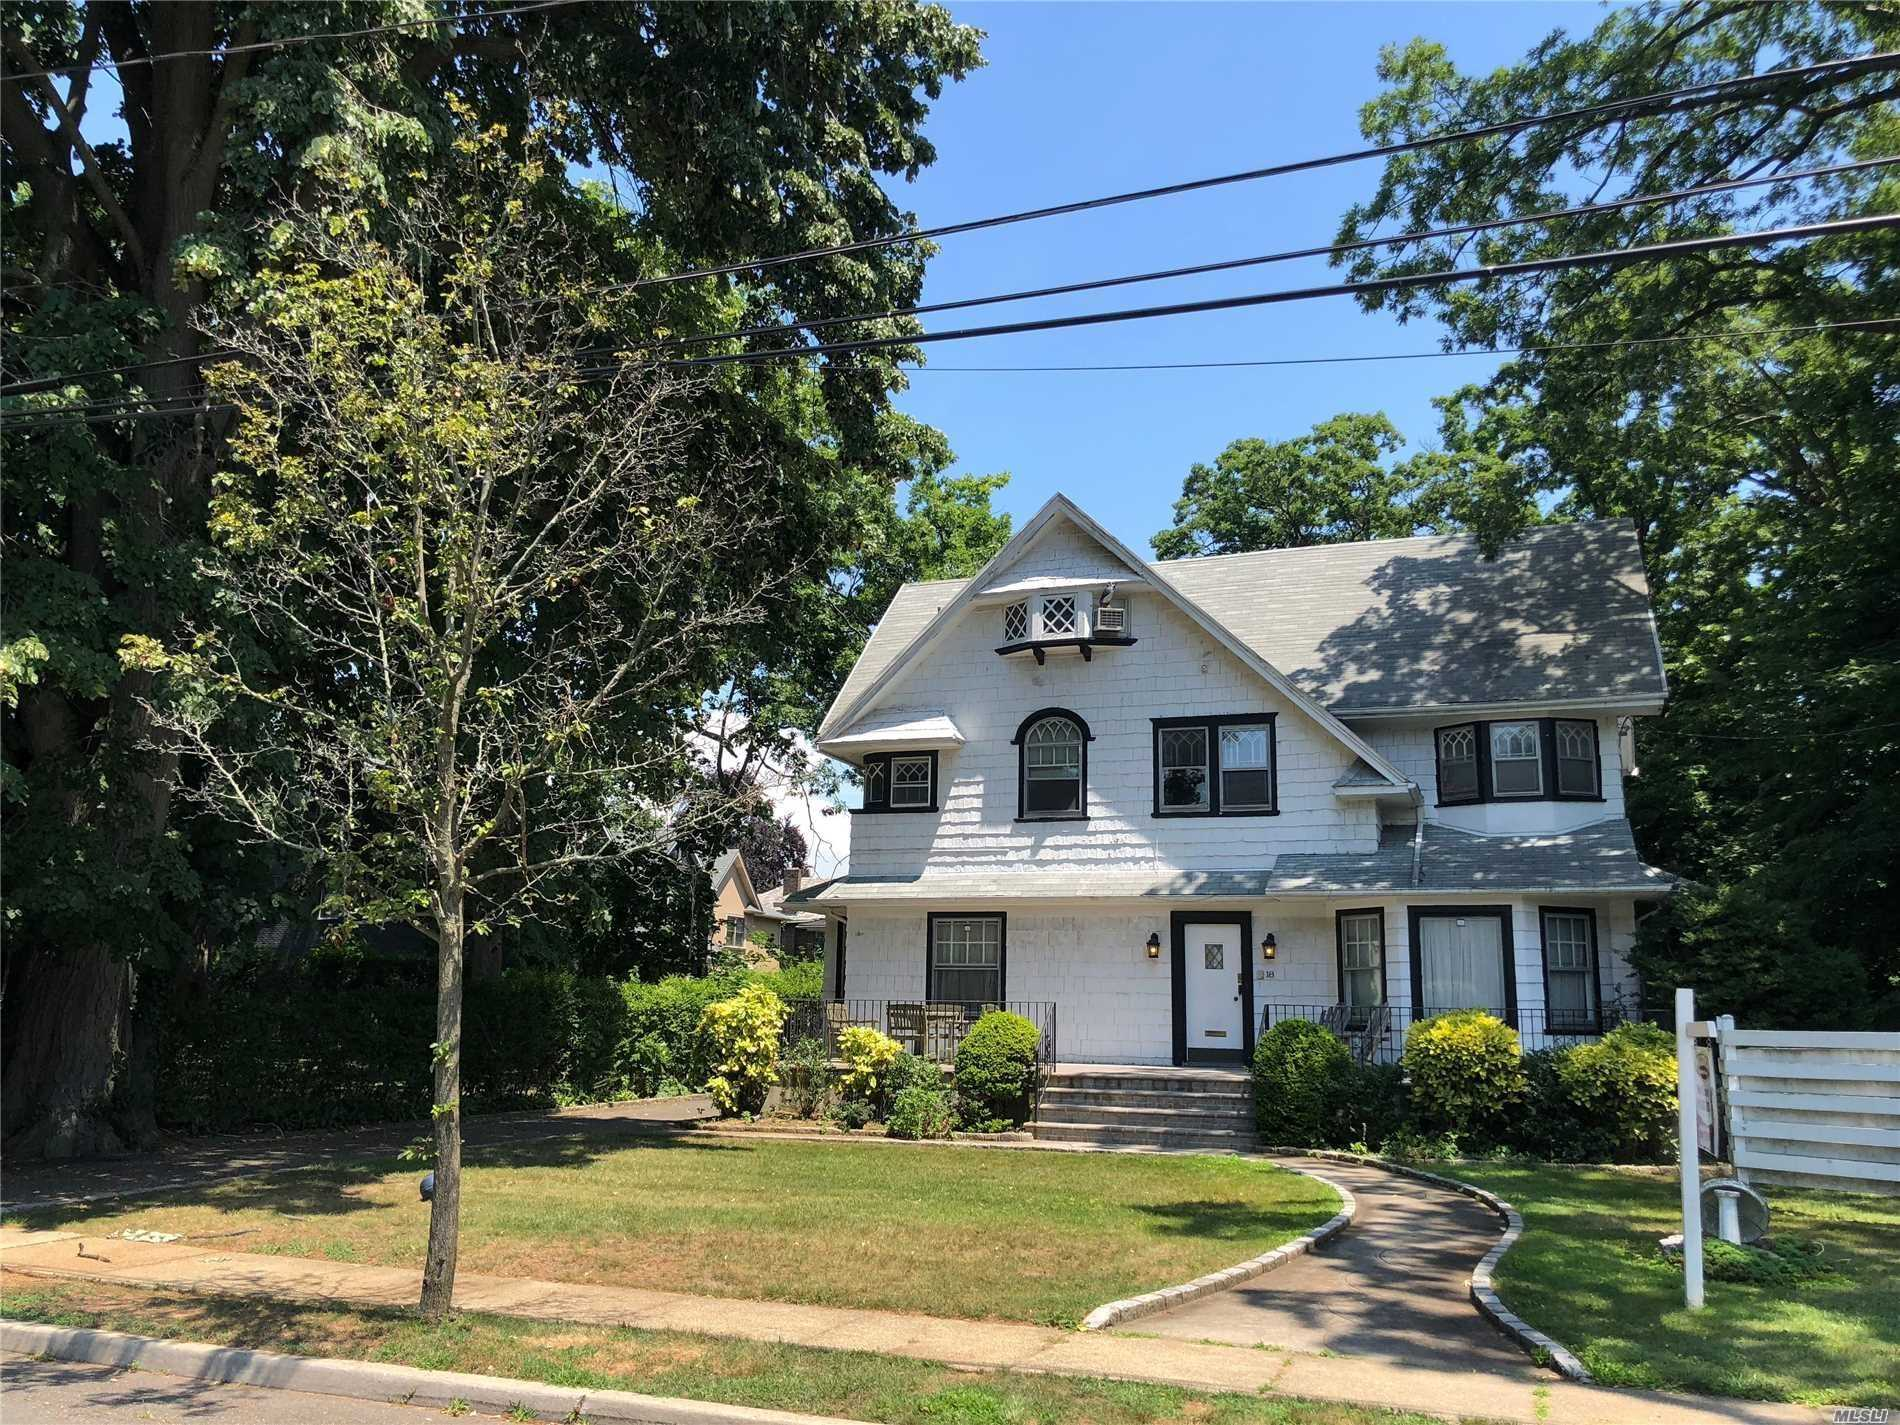 Center Hall Colonial In Sd#15. Features 7 Bedrooms, 3.5 Bath, Eat-In Kitchen With High-End Appliances, Living Room & Master Bedroom With Fireplace, Den With Built-Ins, Cac, Gas Heat, In-Ground Sprinklers, Alarm, Oversized Lot, Full Finished Basement & Attic. Close To All.